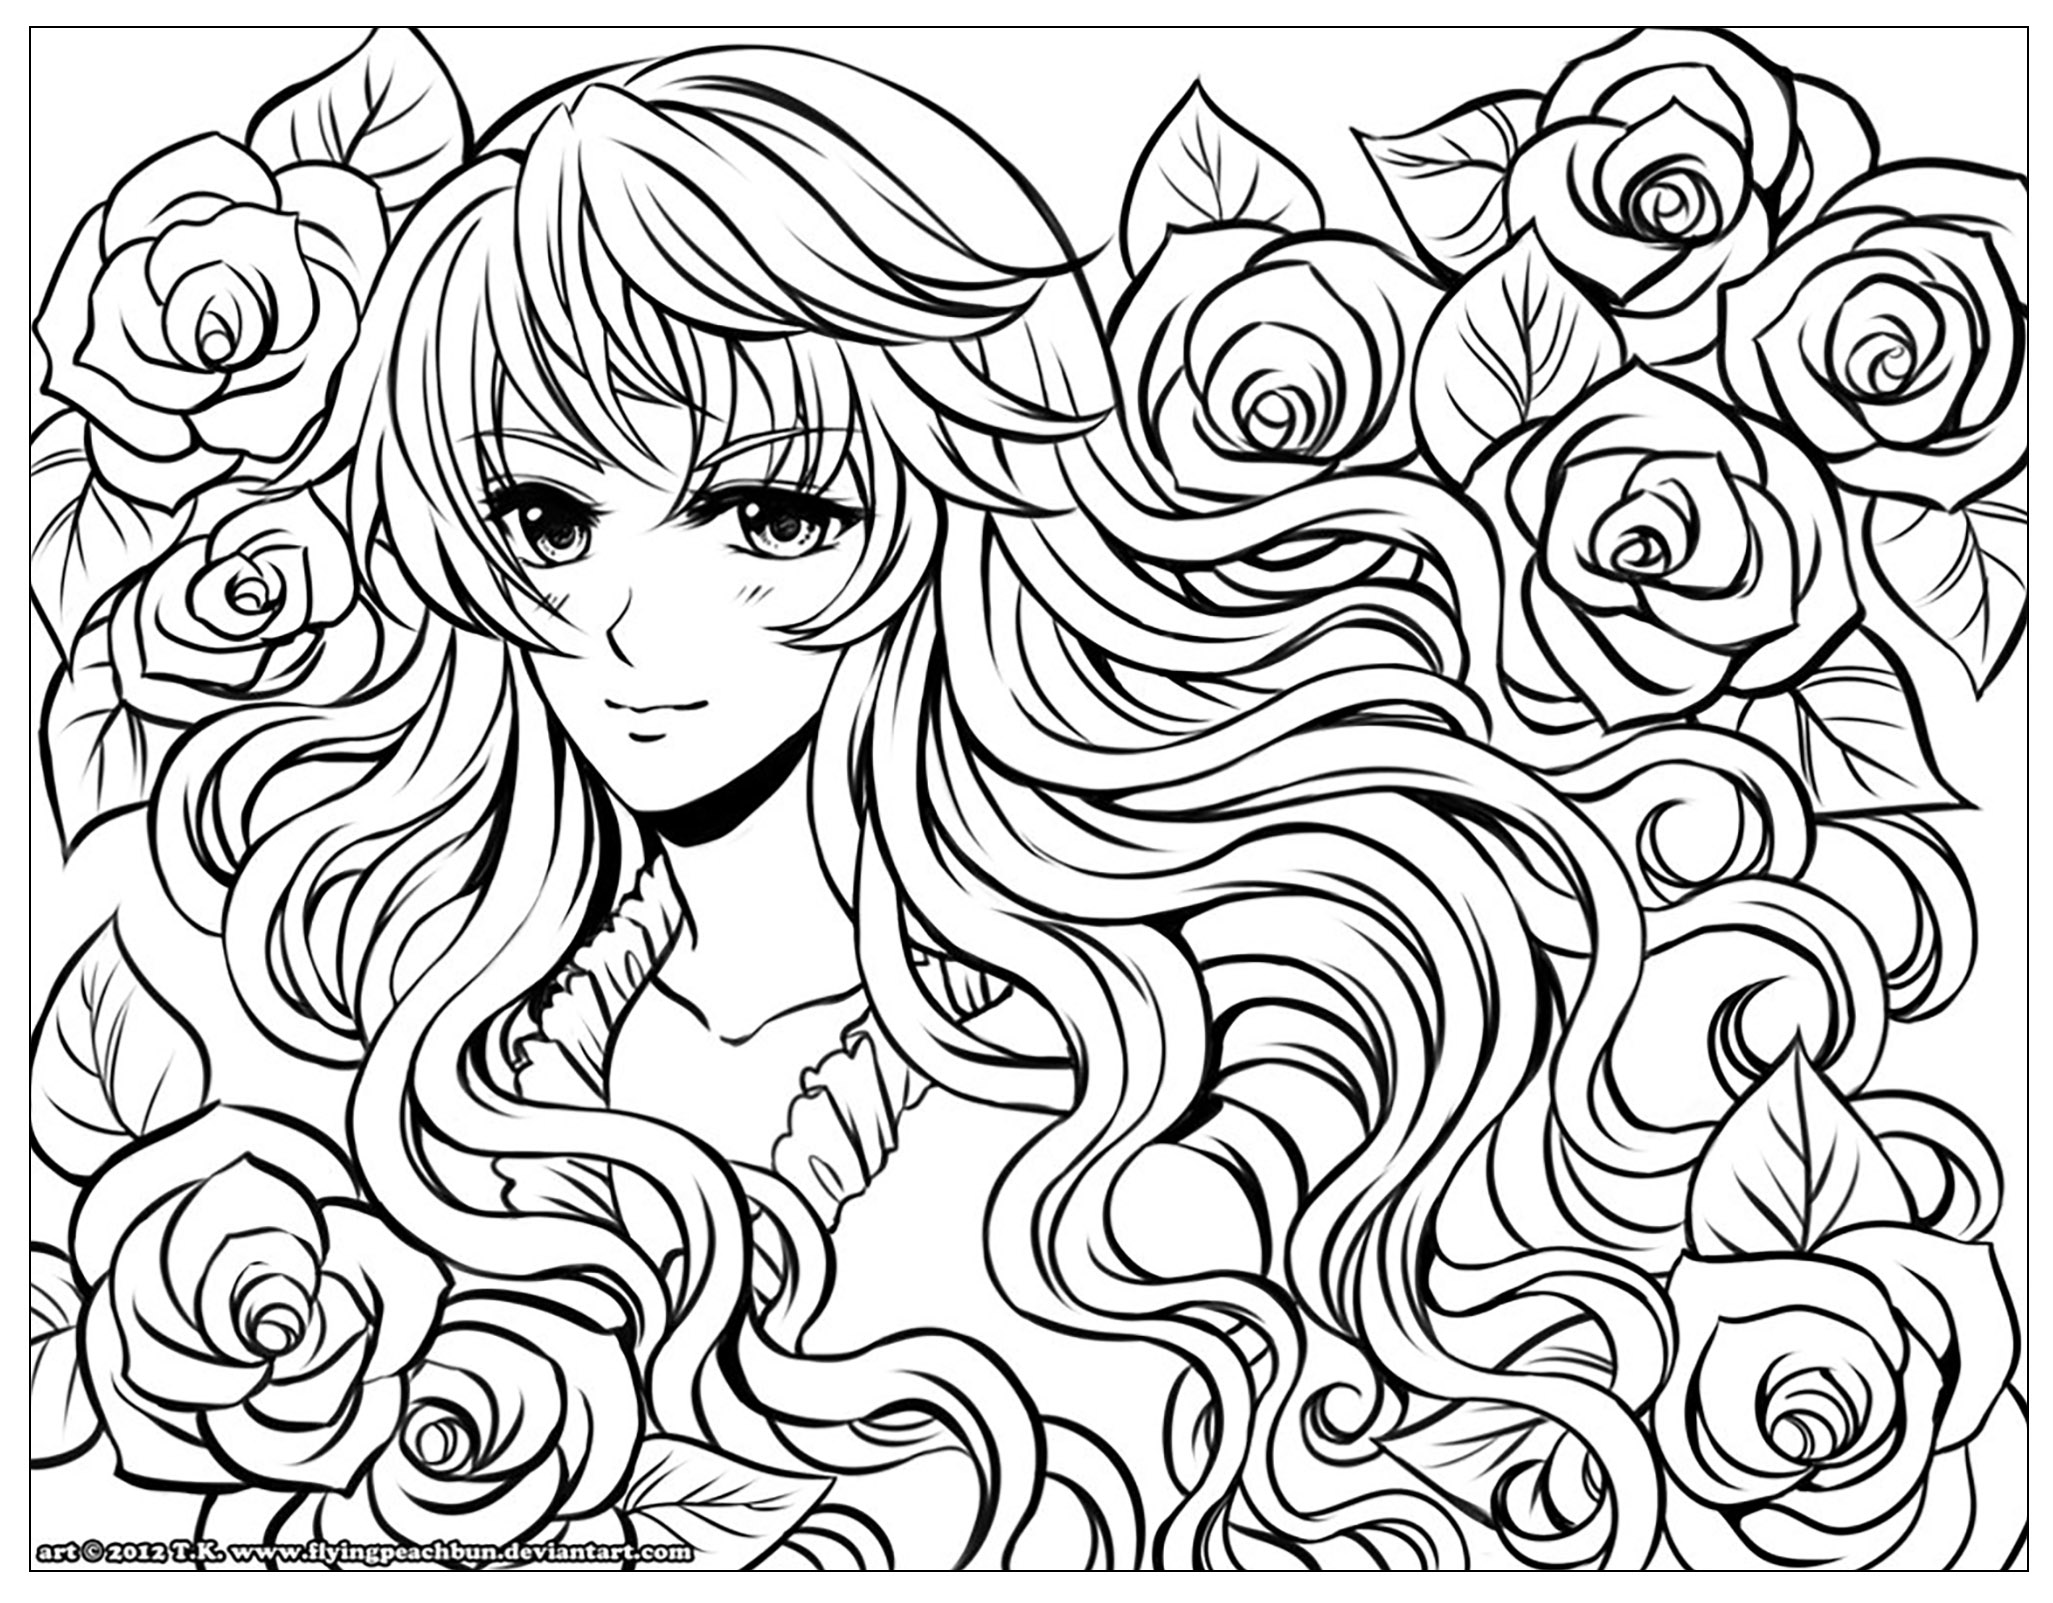 print - Girl Anime Coloring Pages